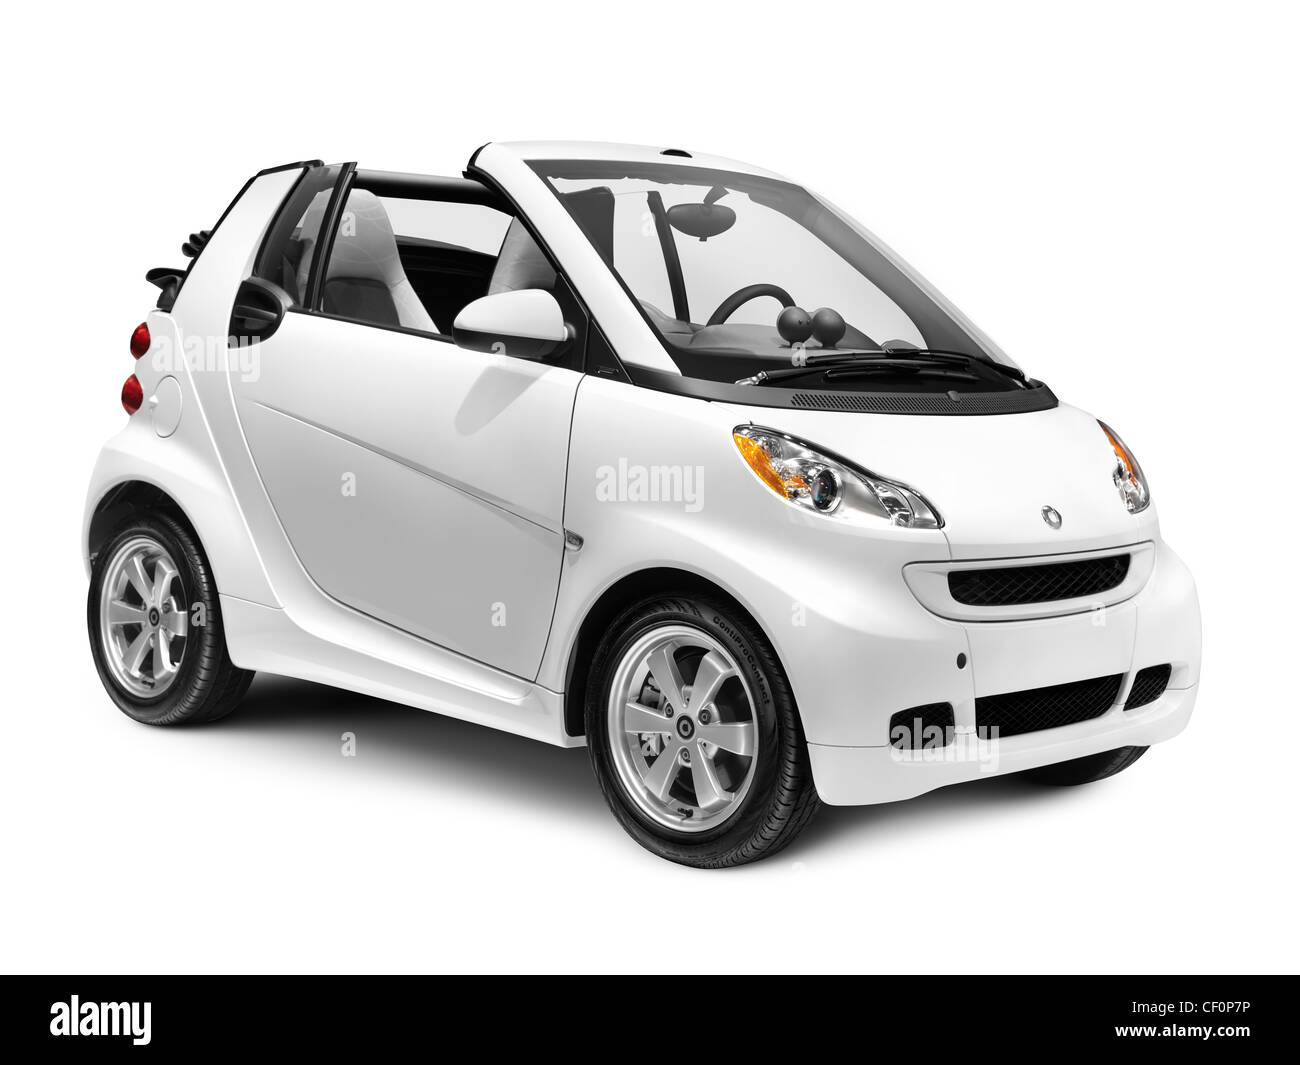 2012 Smart ForTwo Passion Cabriolet small convertible city car isolated on white background - Stock Image